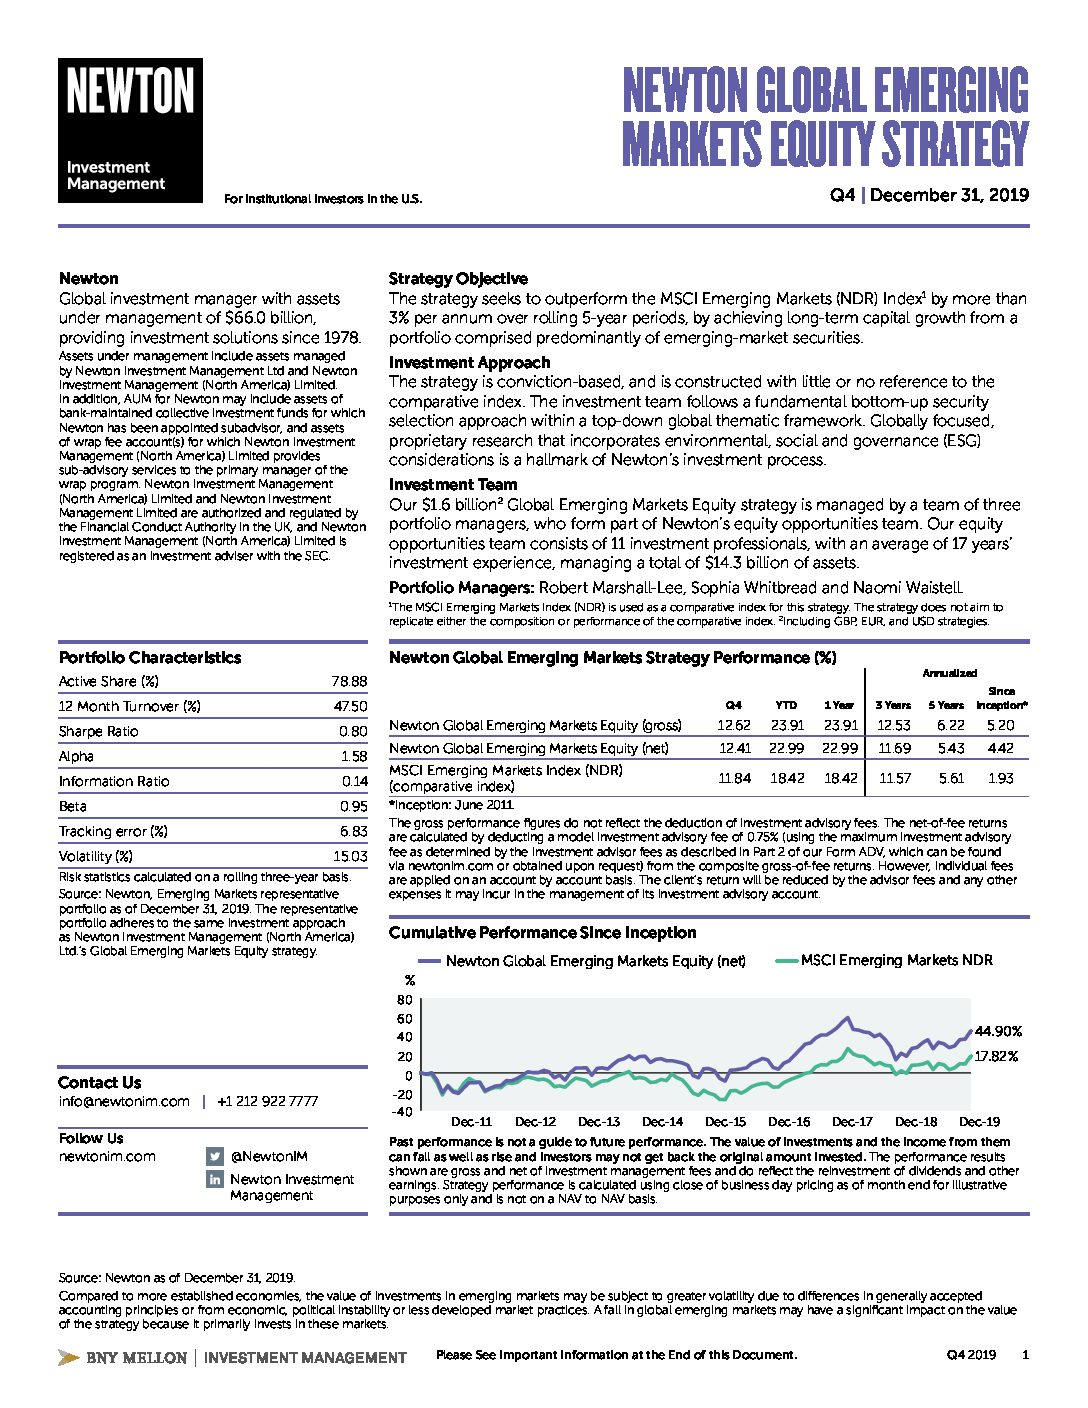 NIMNA Global Emerging Markets Equity strategy factsheet